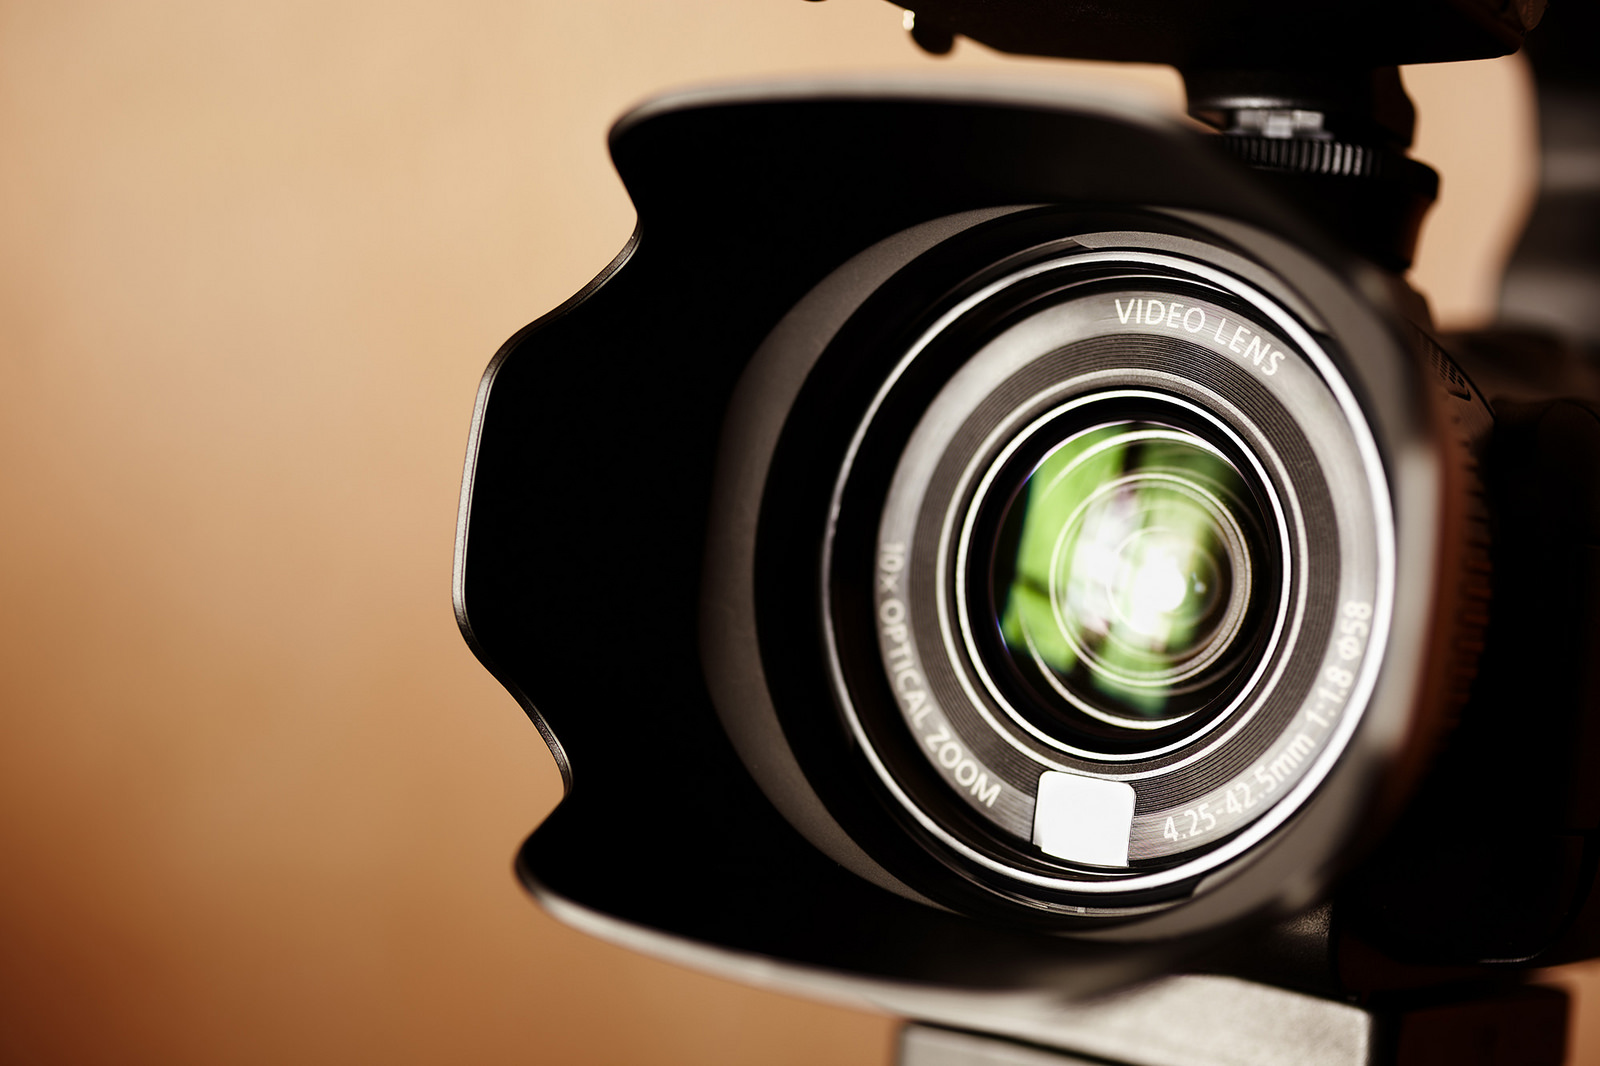 TOP 3 Reasons Why Videos are Essential to Your Marketing Strategy